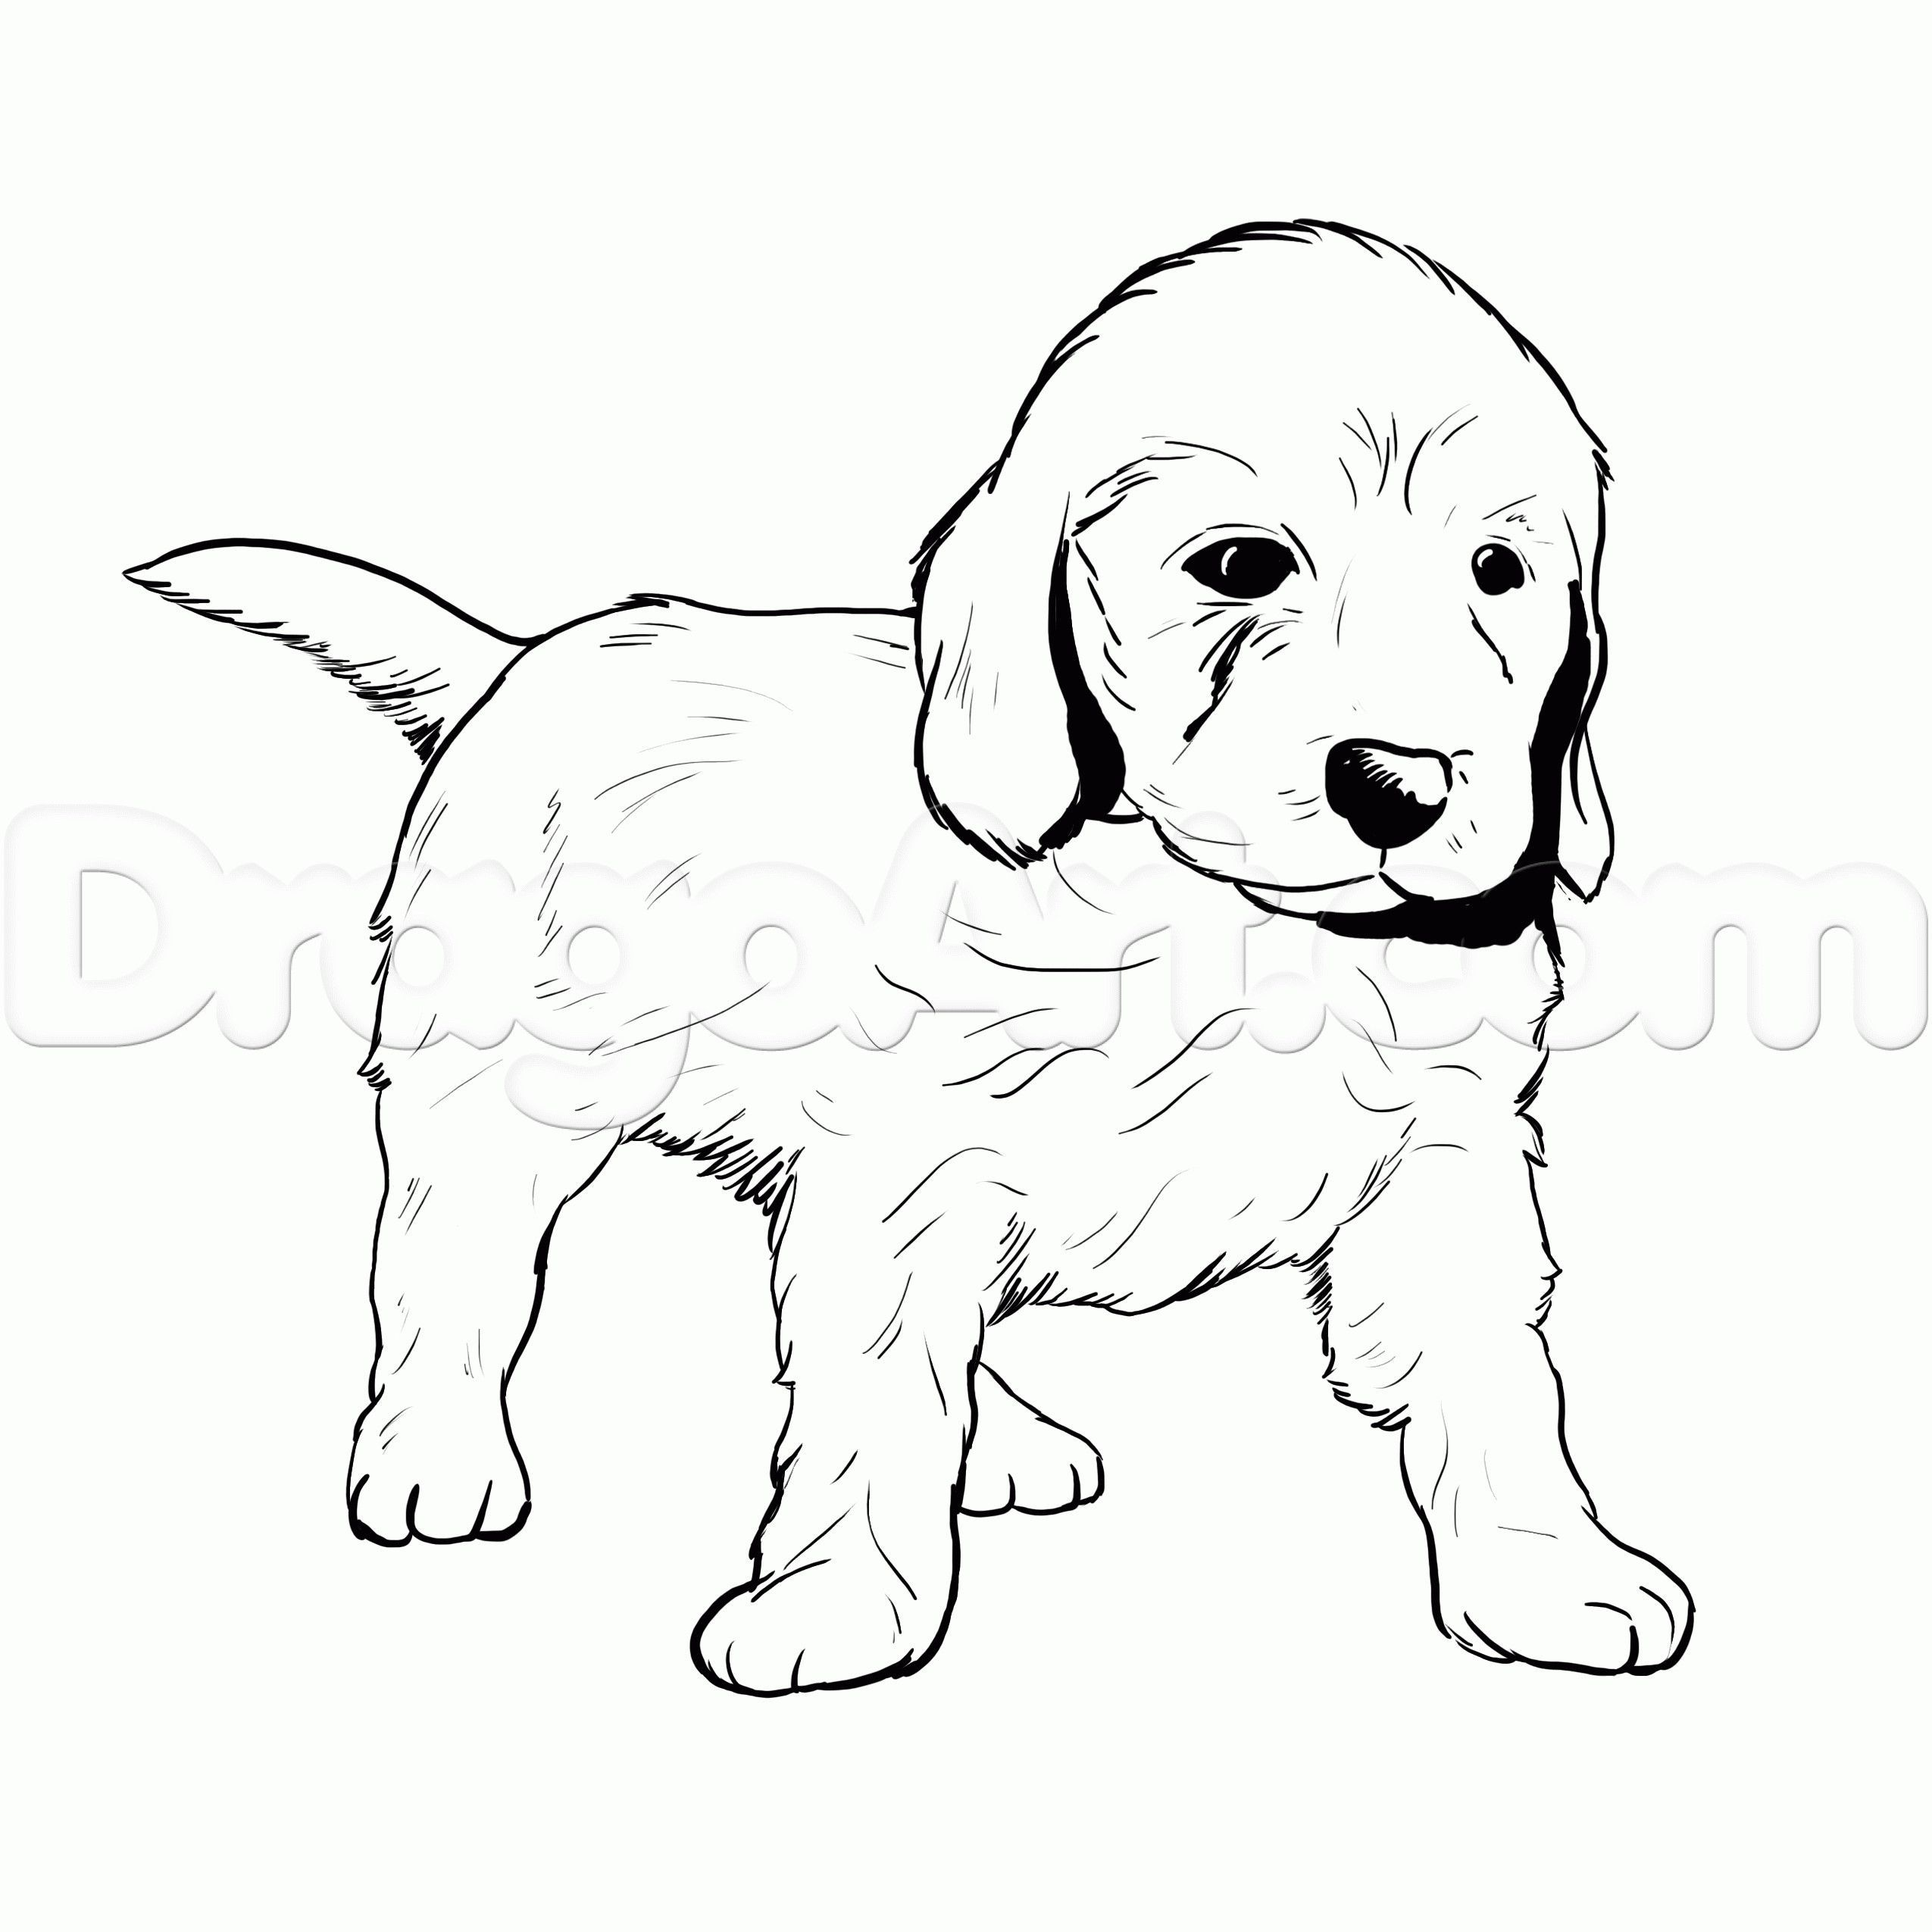 Golden Retriever Coloring Page Golden Retriever Coloring Pages New Golden Retriever Puppy Coloring Funnypuppycoloringpages Dibujos Josue Rebeca